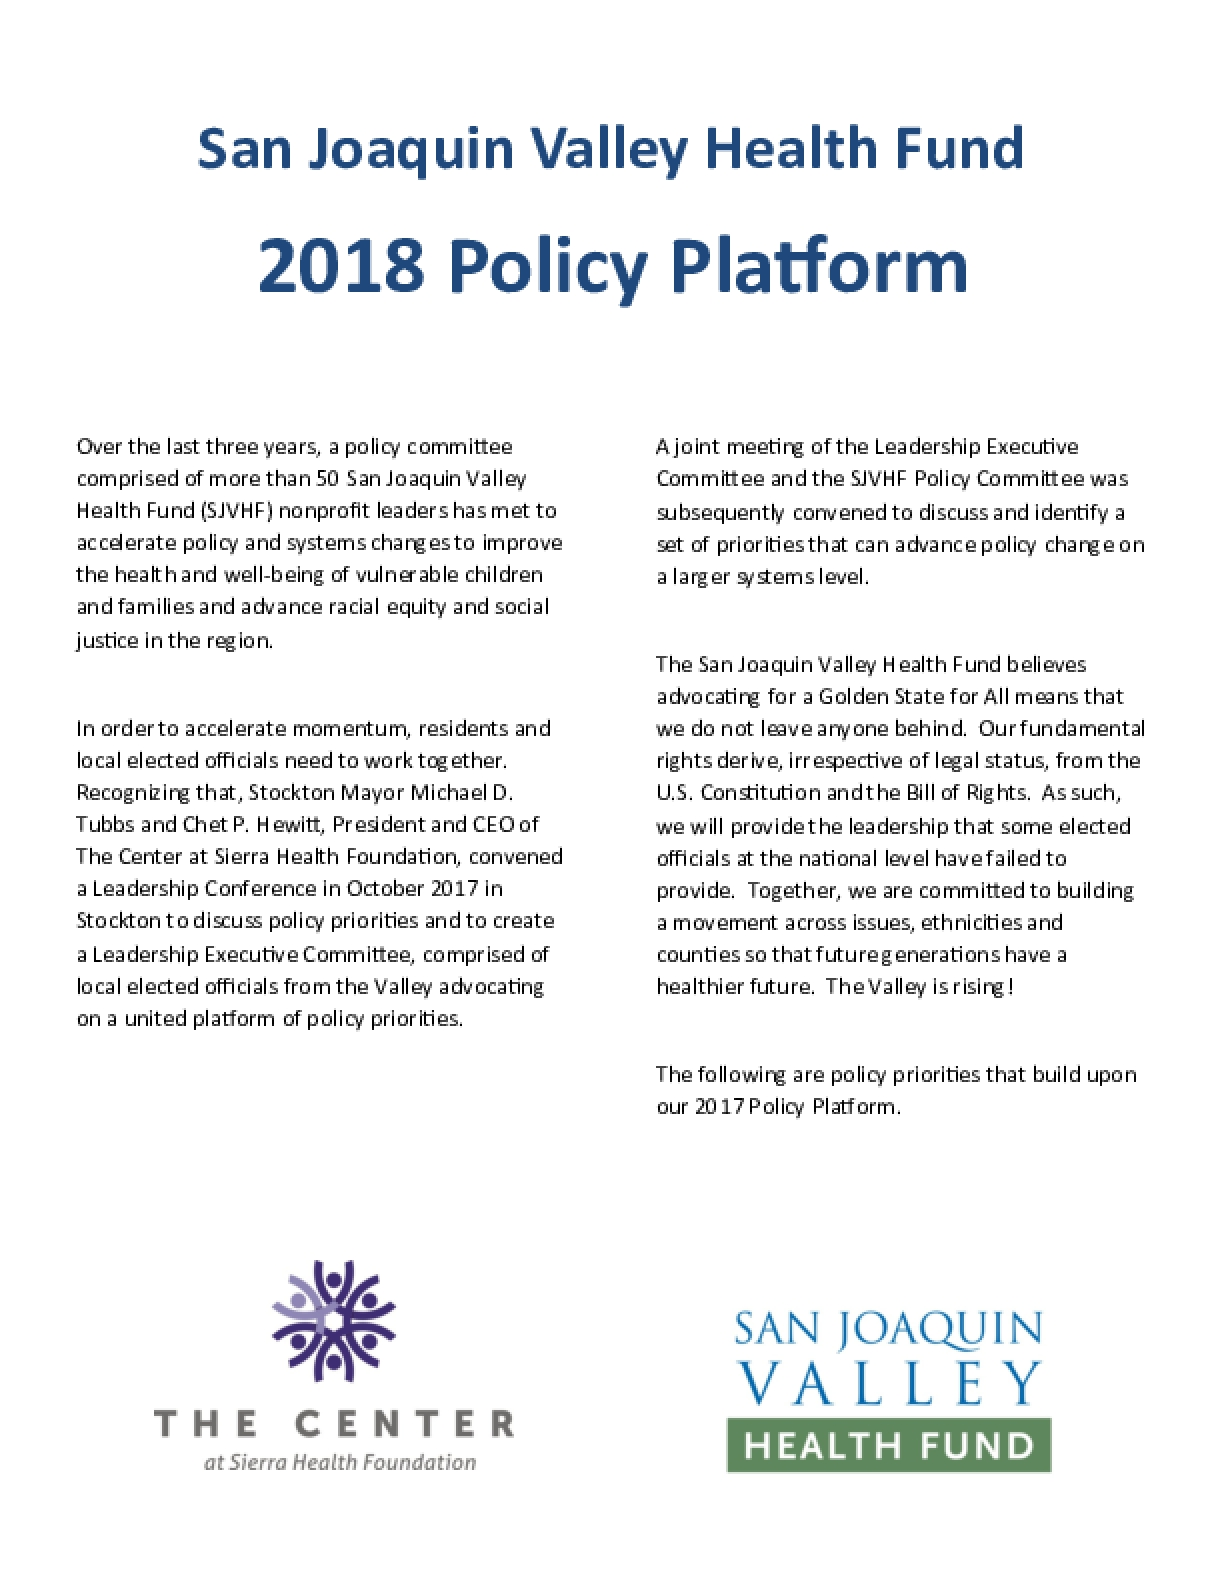 San Joaquin Valley Health Fund: 2018 Policy Platform